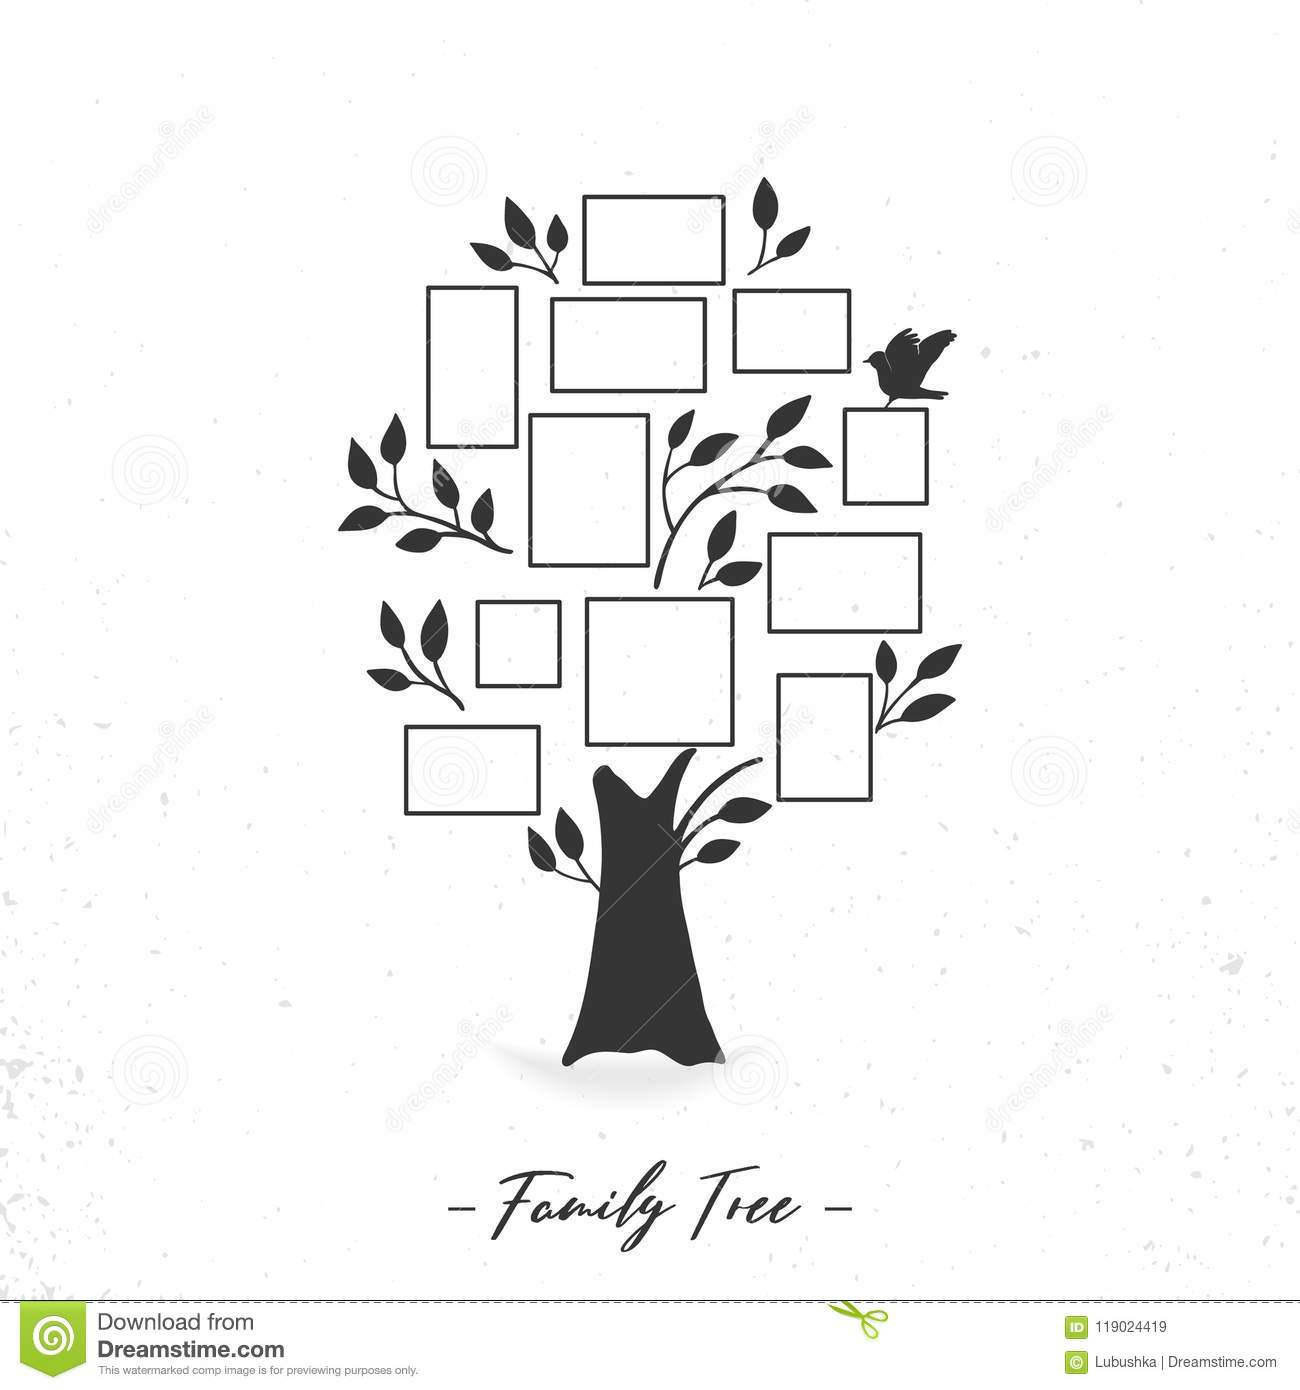 Family Tree With Photo Frames Stock Vector - Illustration of bird ...